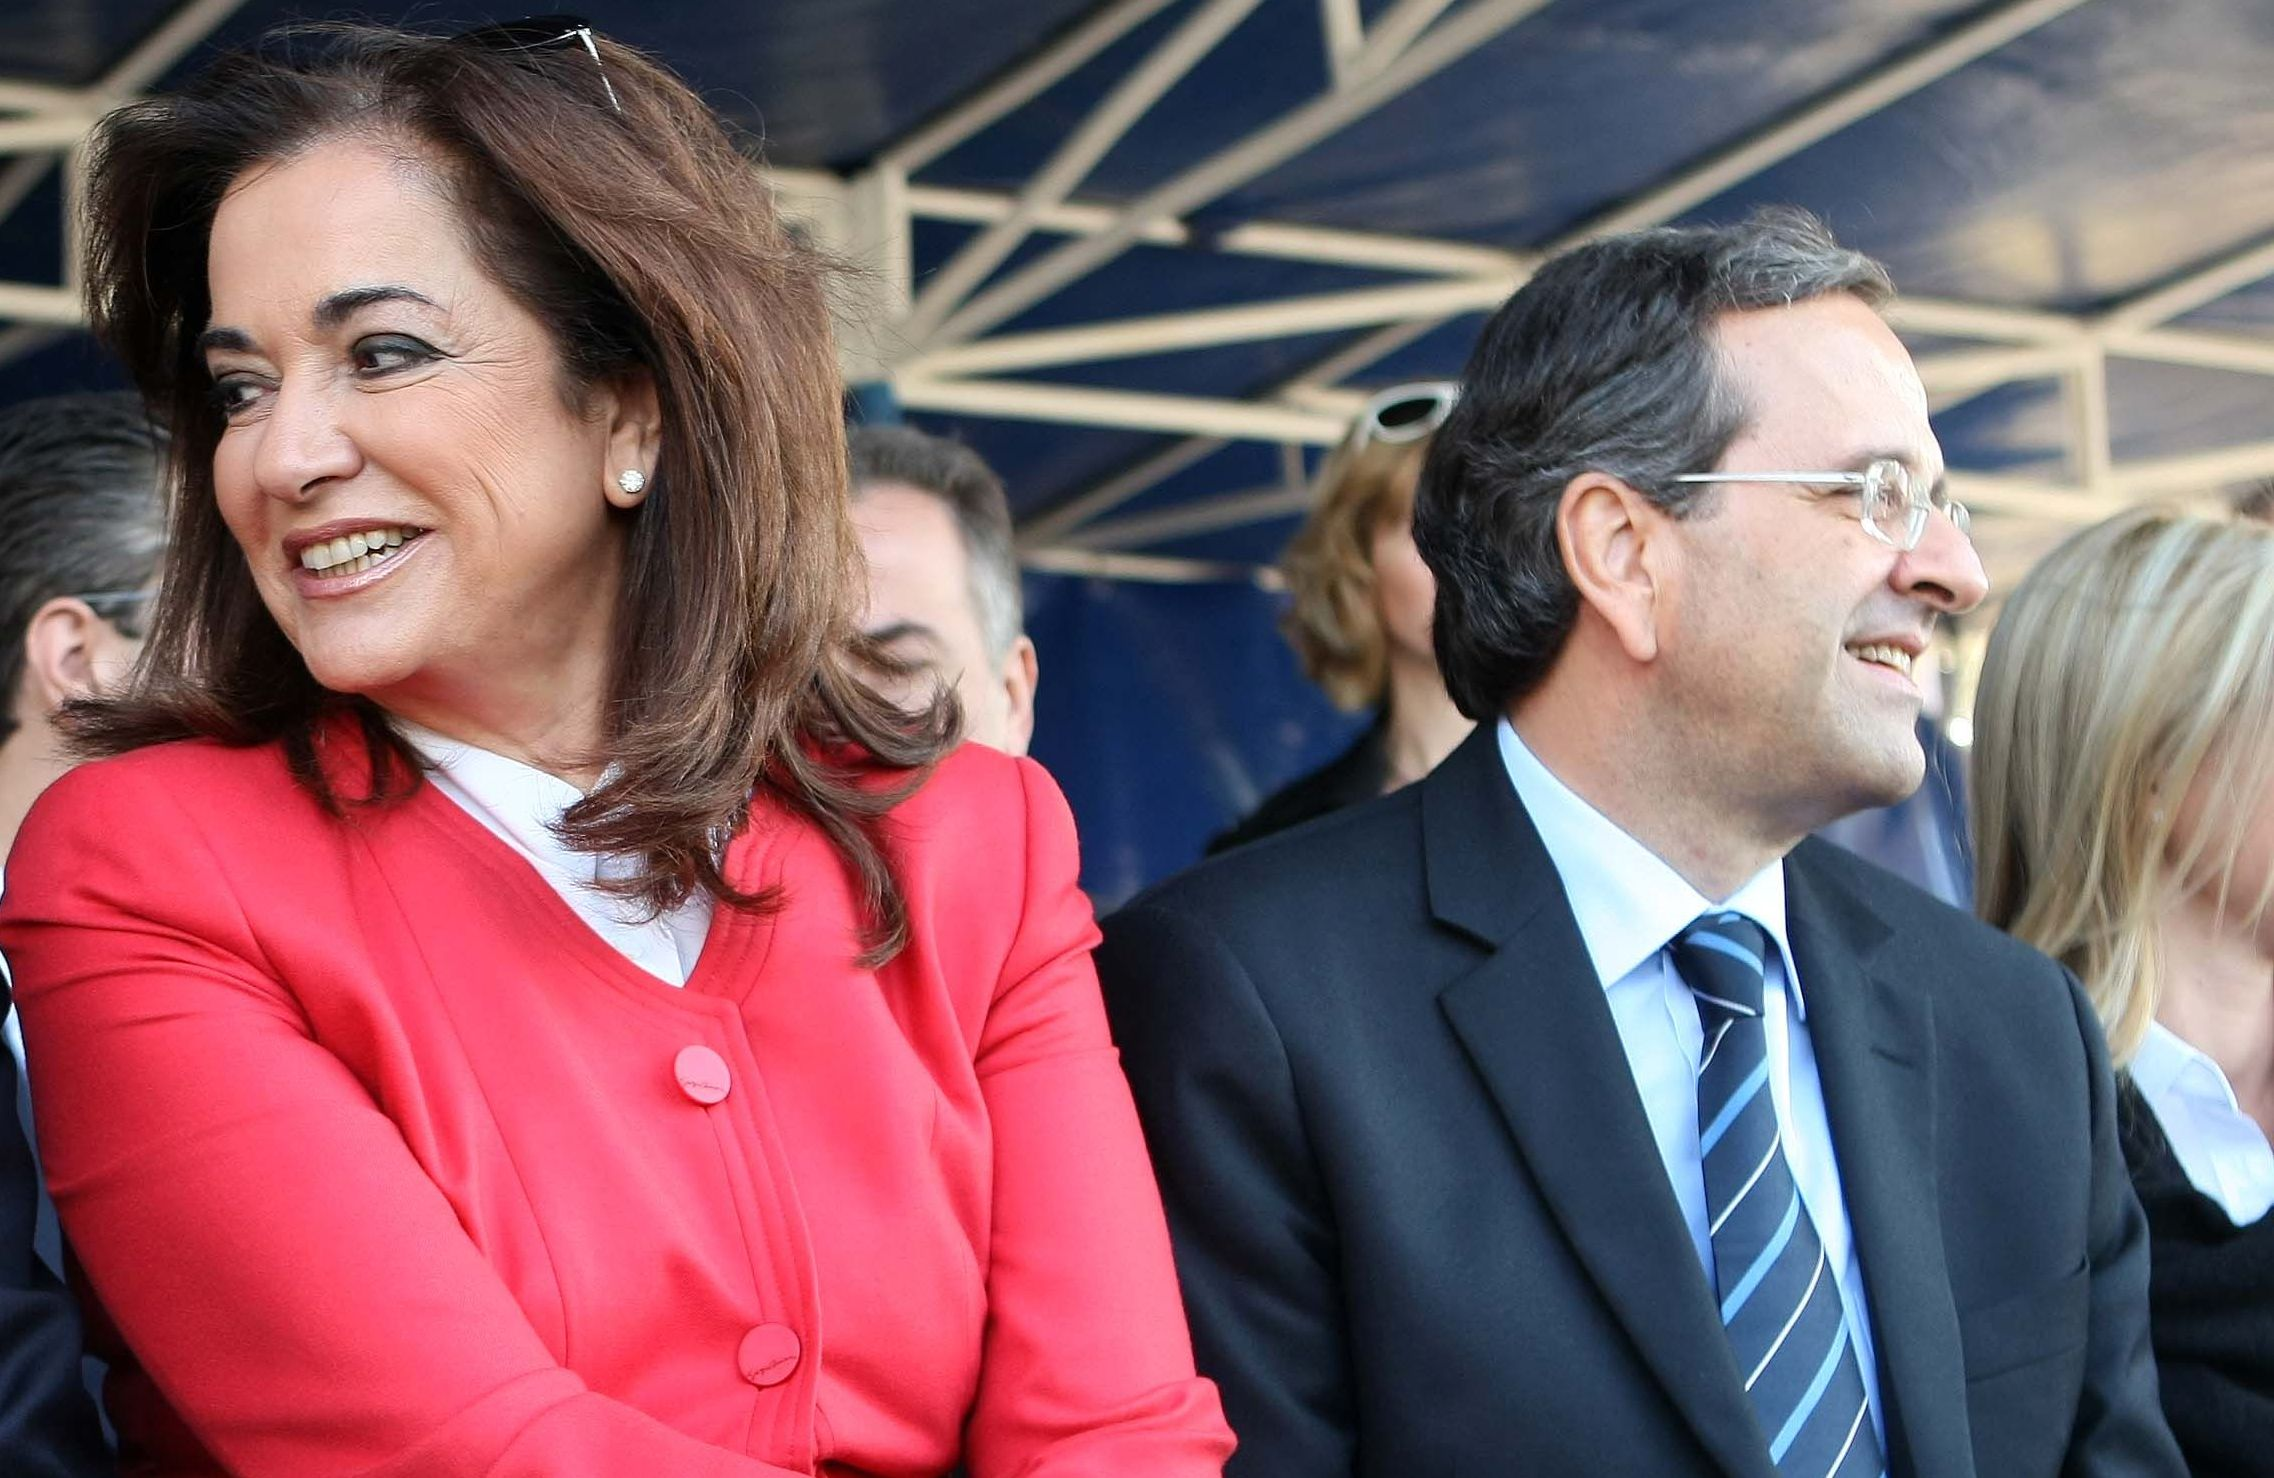 Antonis Samaras challenged in the Parliamentary Group of New Democracy